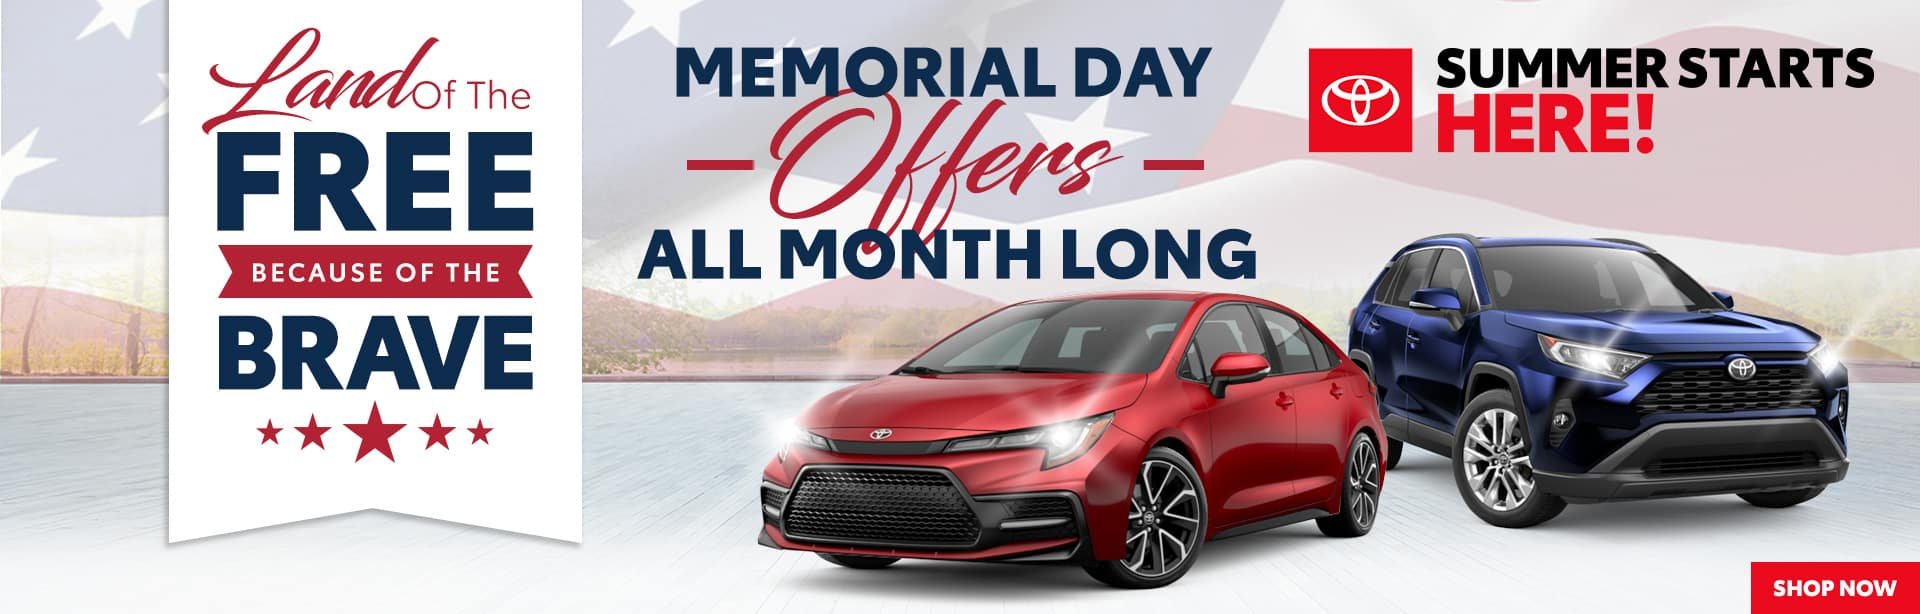 Land of the Free Because of The Brave | Memorial Day Offers All Month Long | Summer Starts Here!